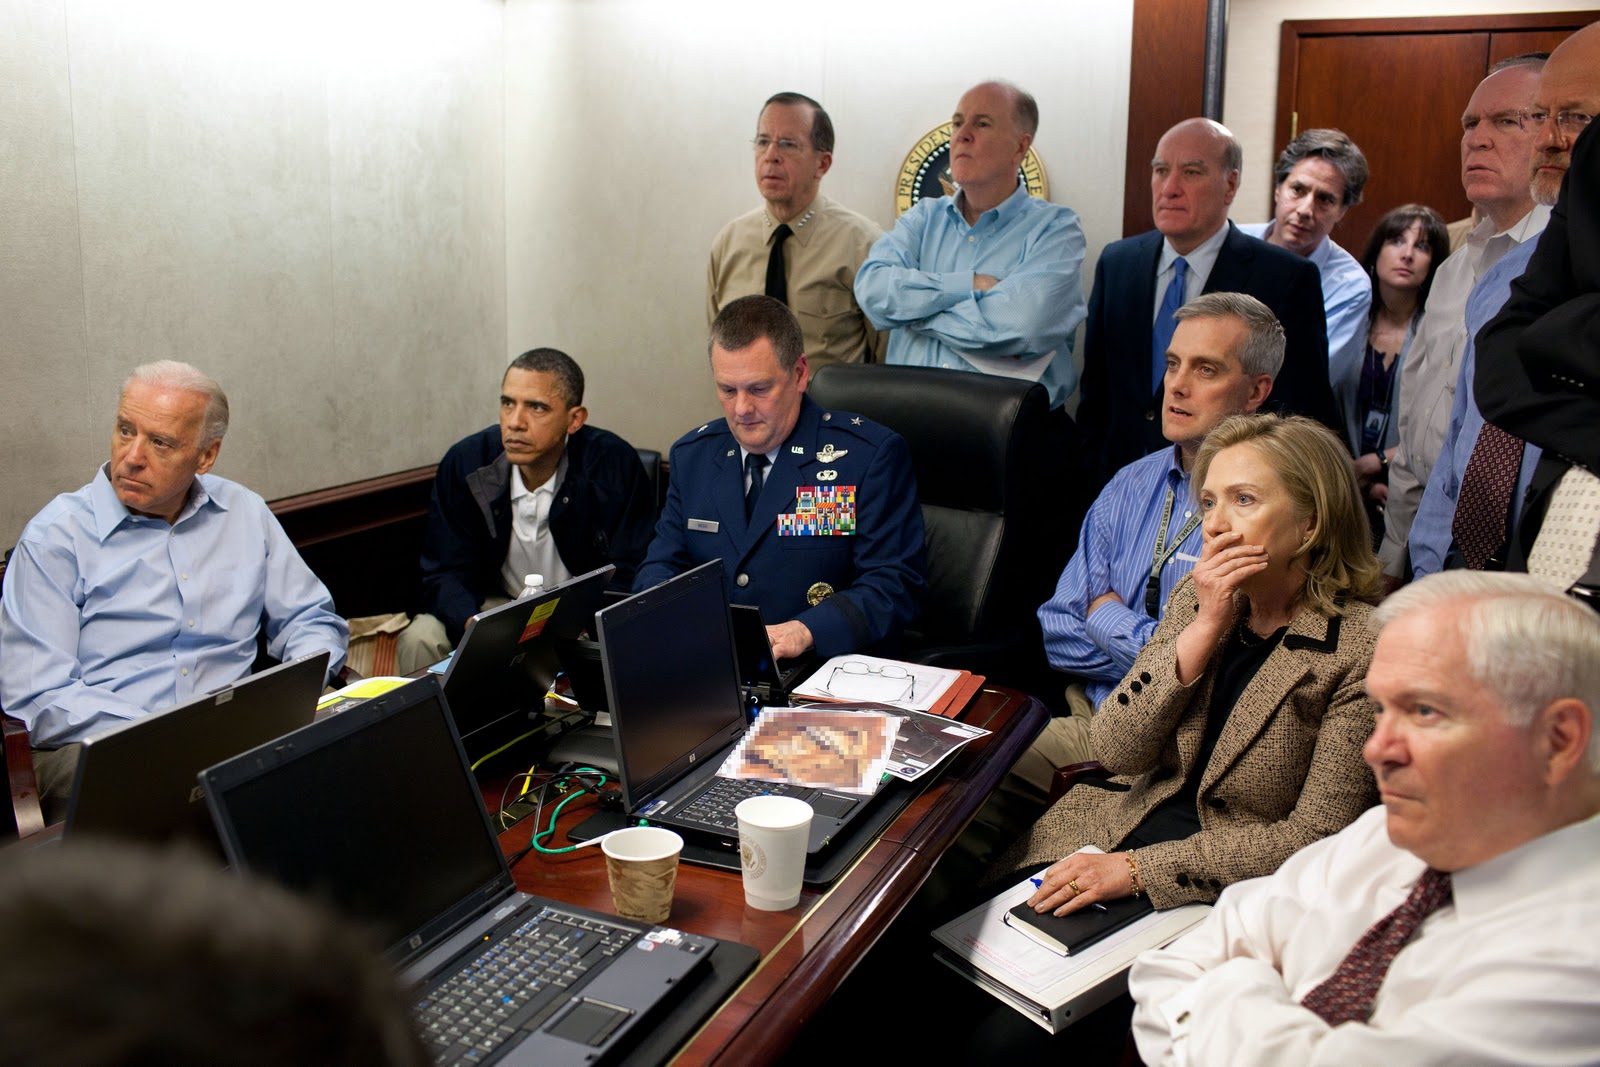 President Barack Obama National Security Team